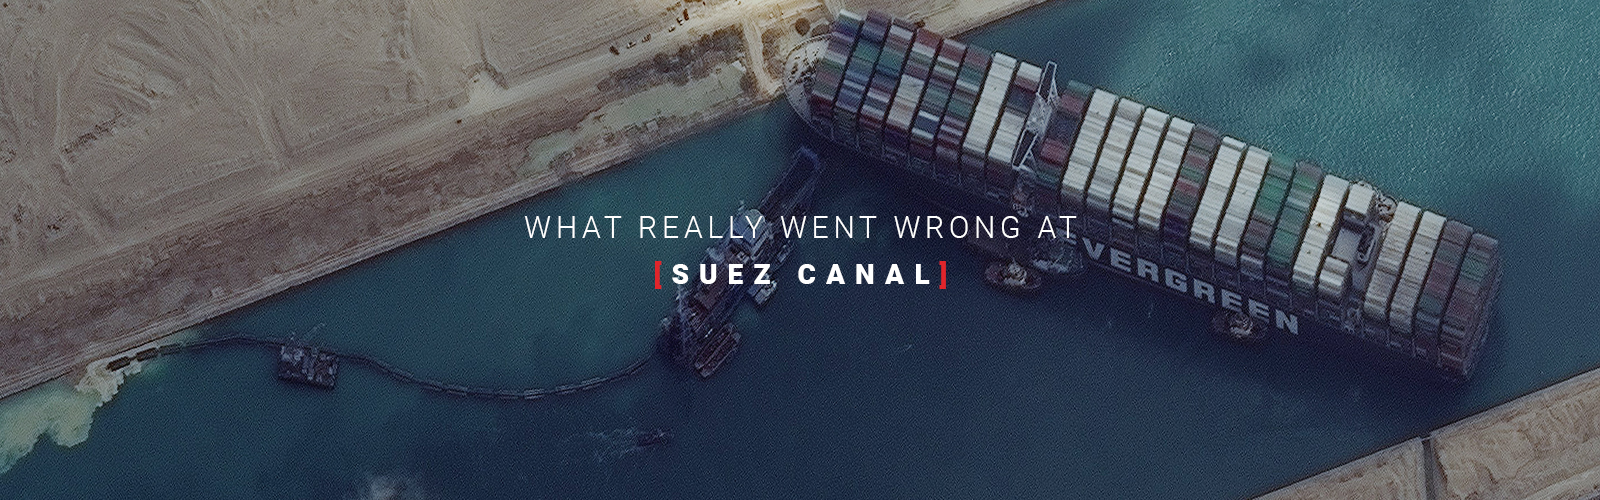 What really went wrong at Suez Canal and how to prevent it in the future?